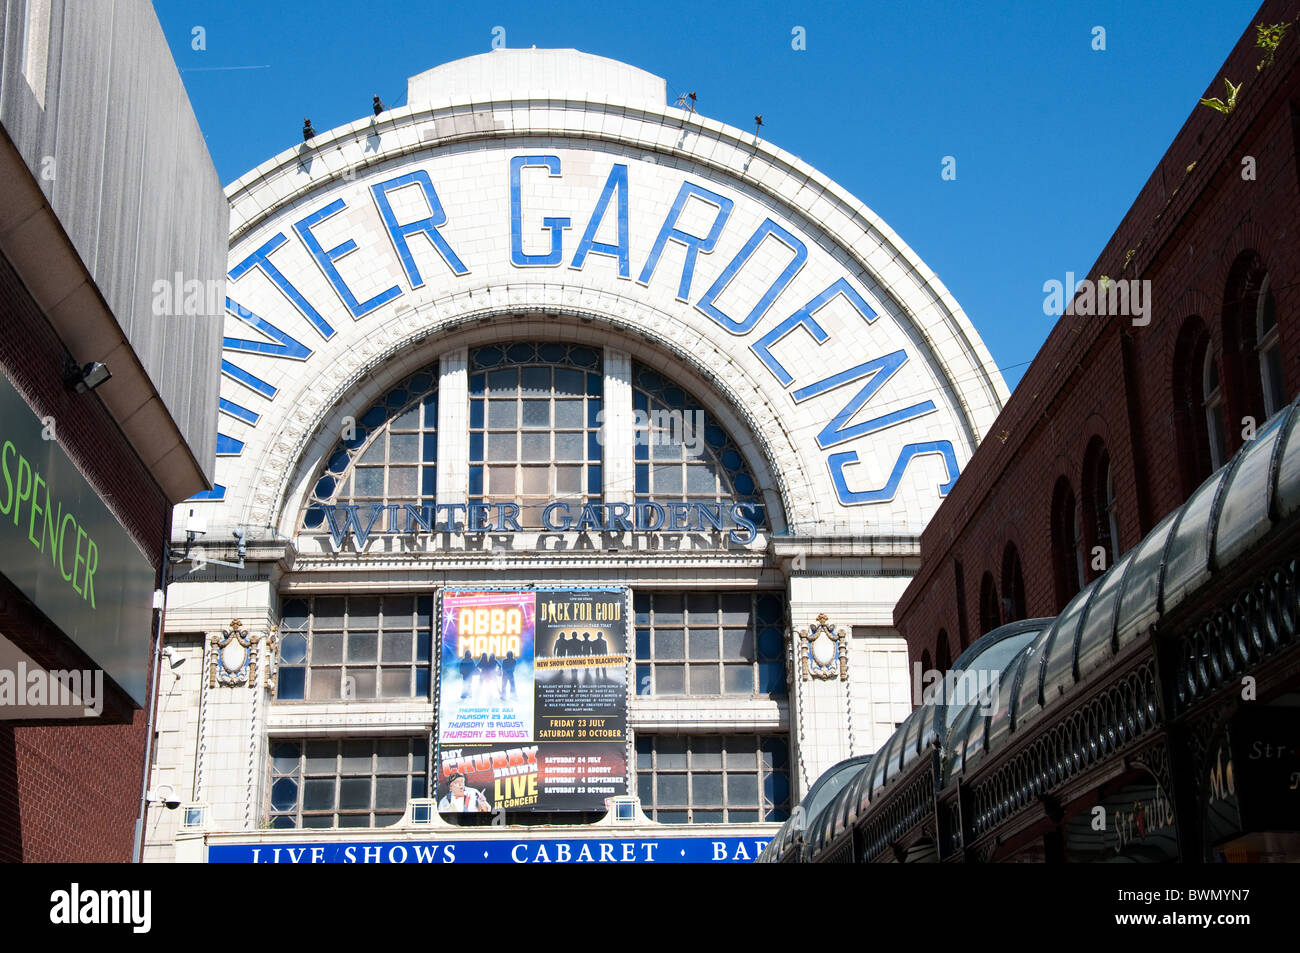 the entrance facade of the winter gardens theatre in blackpool on